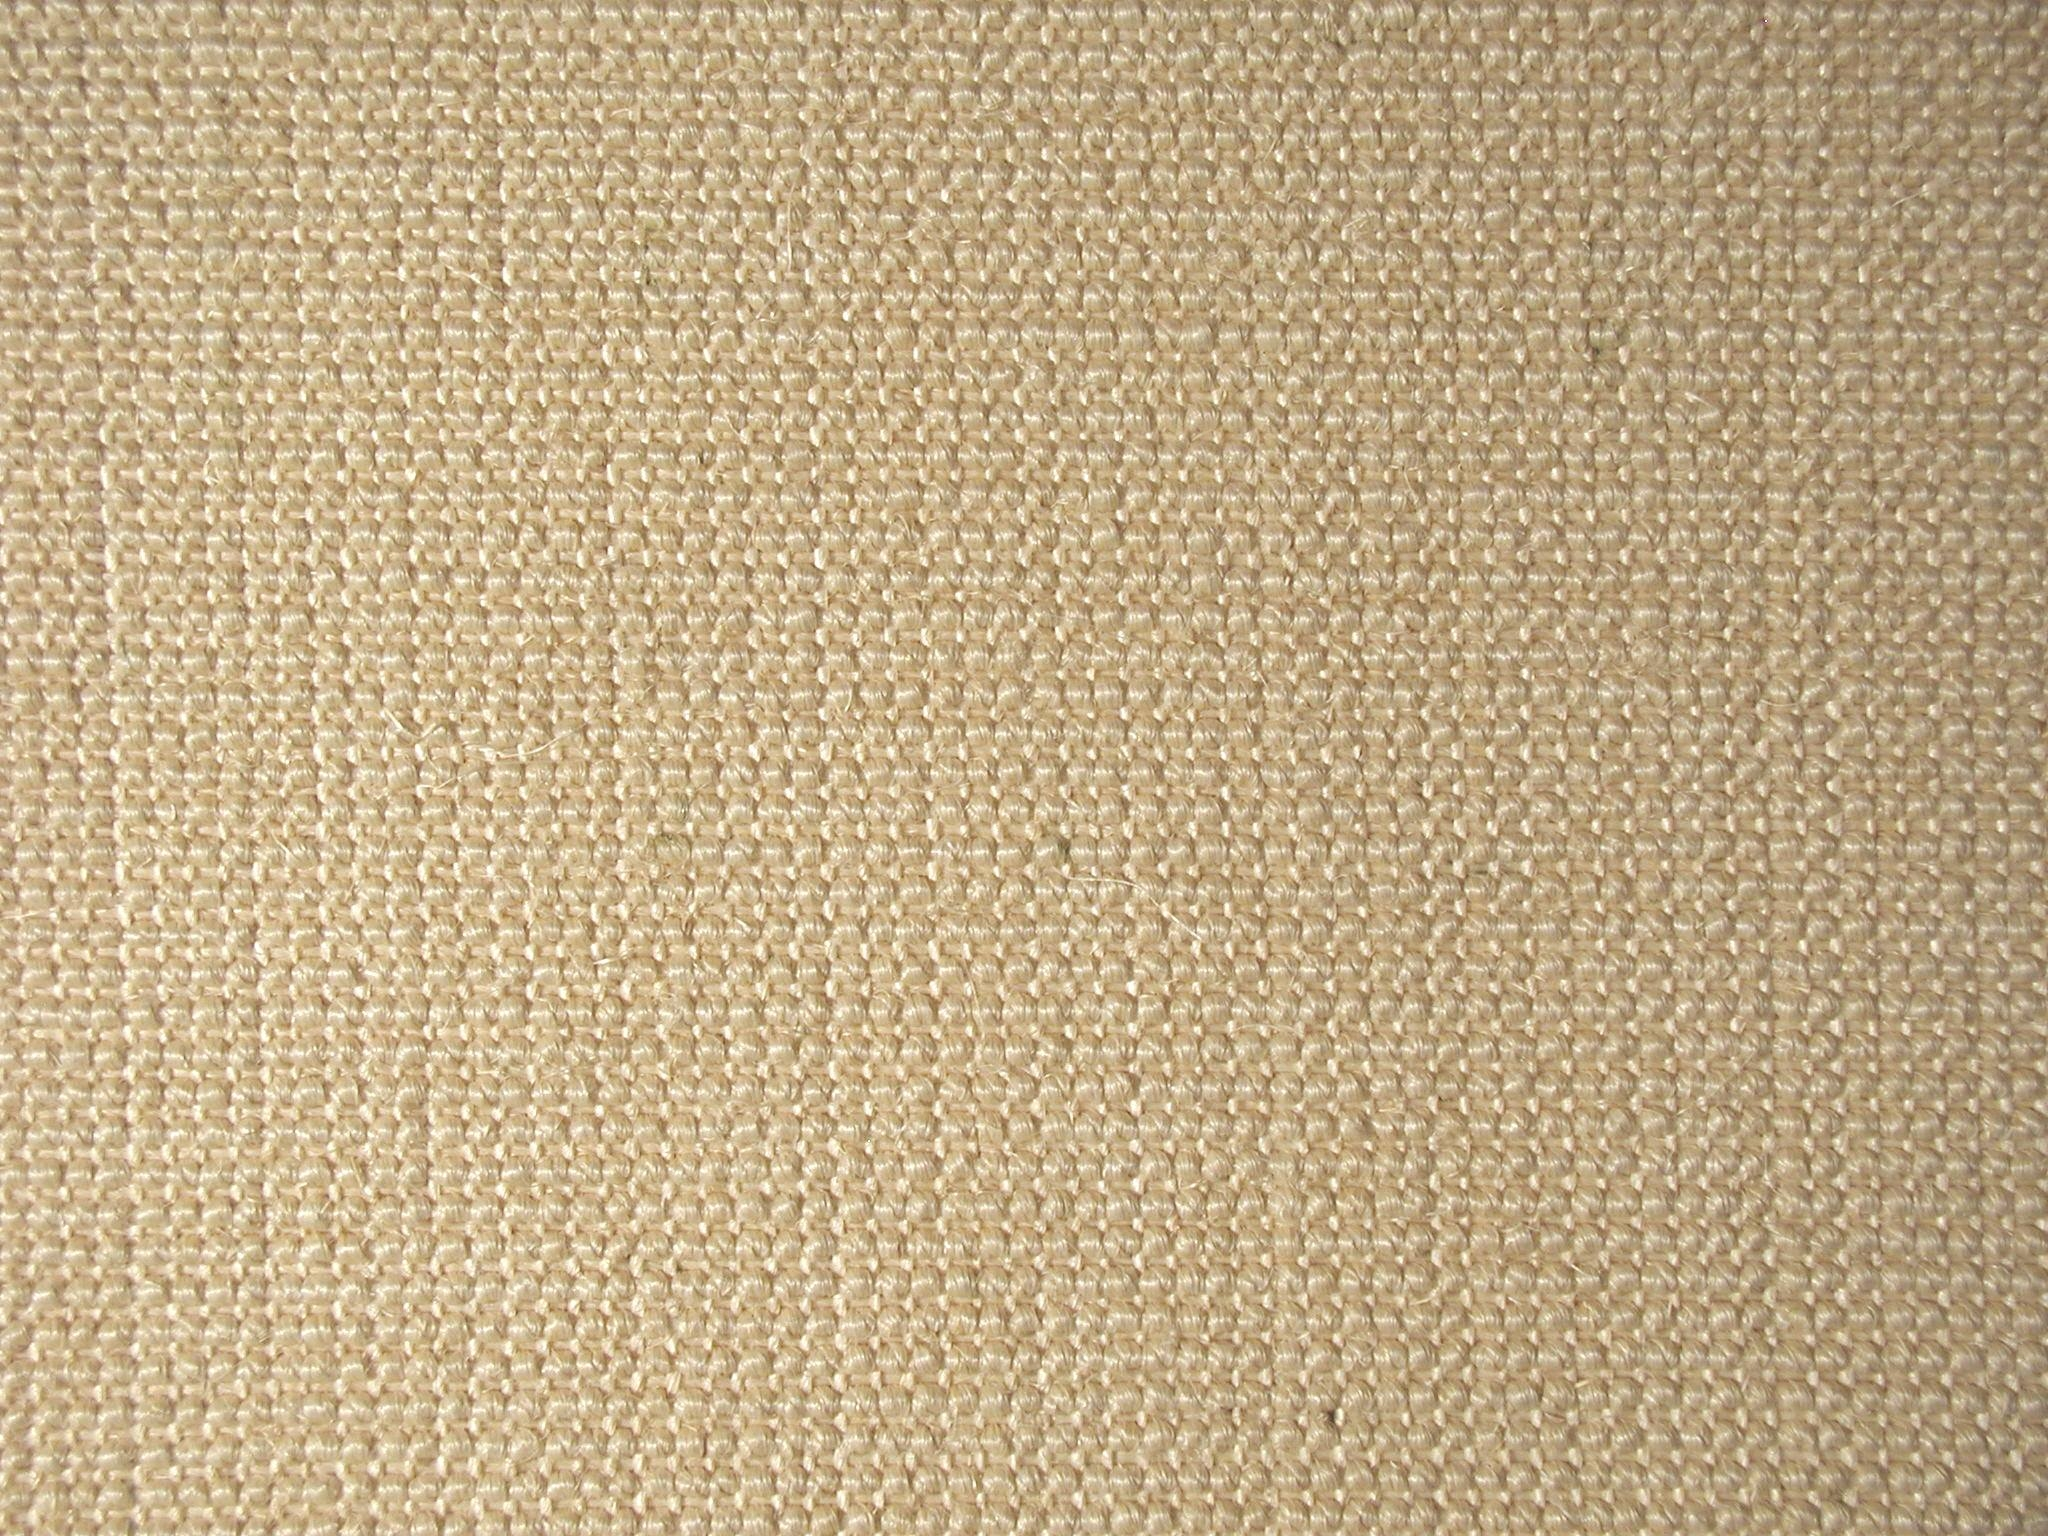 Flooring Rugs Wool Sisal Rugs Natural Sisal Rugs Ikea And Small Inside Wool Sisal Area Rugs (#6 of 15)